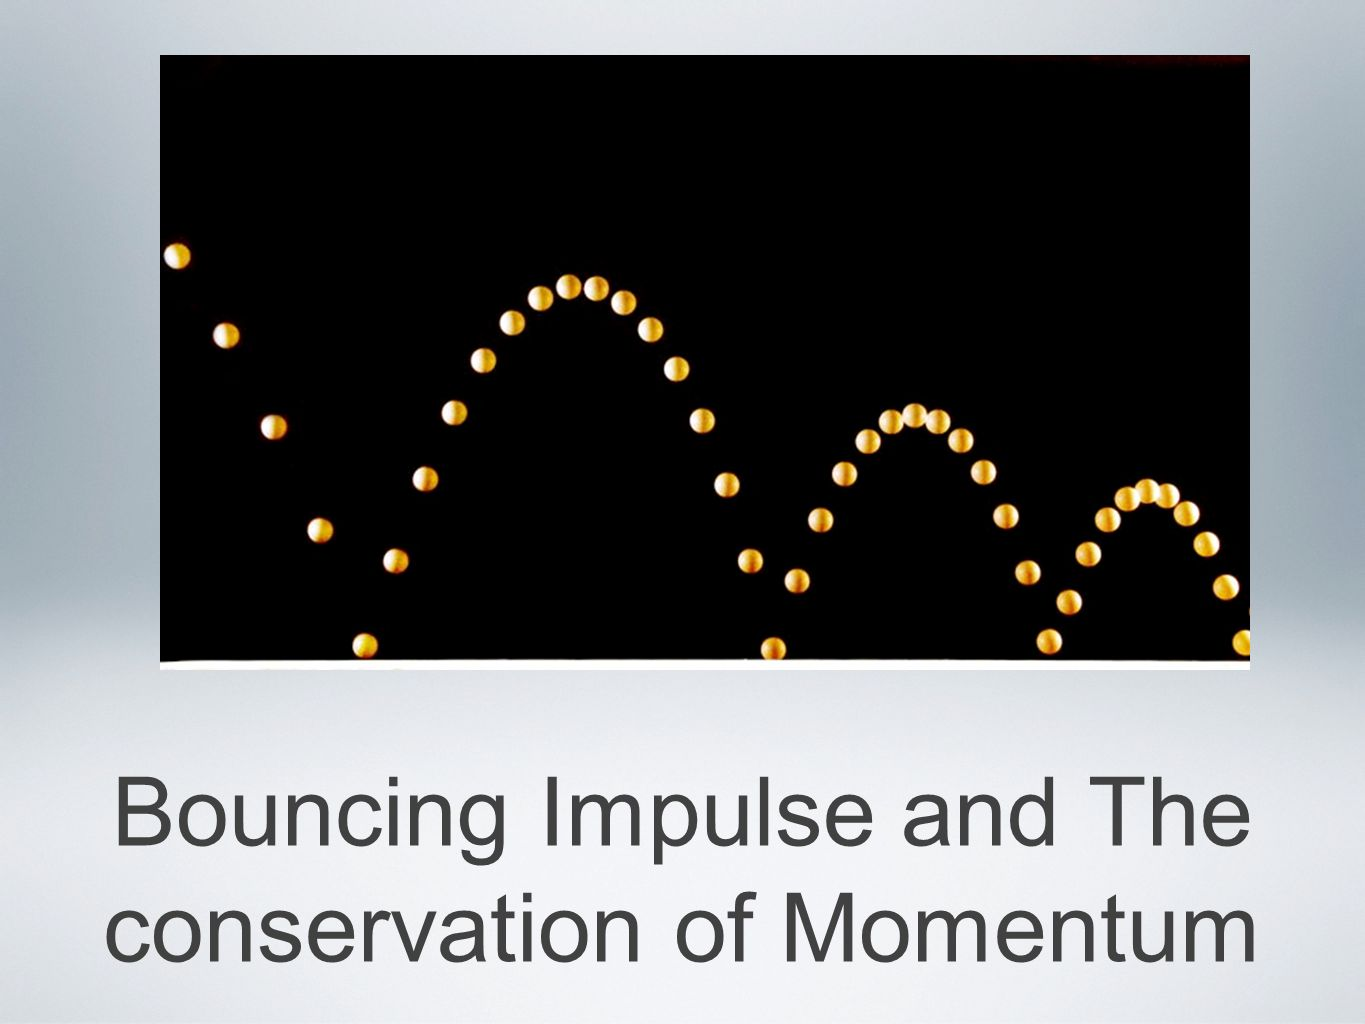 Bouncing Impulse and The conservation of Momentum